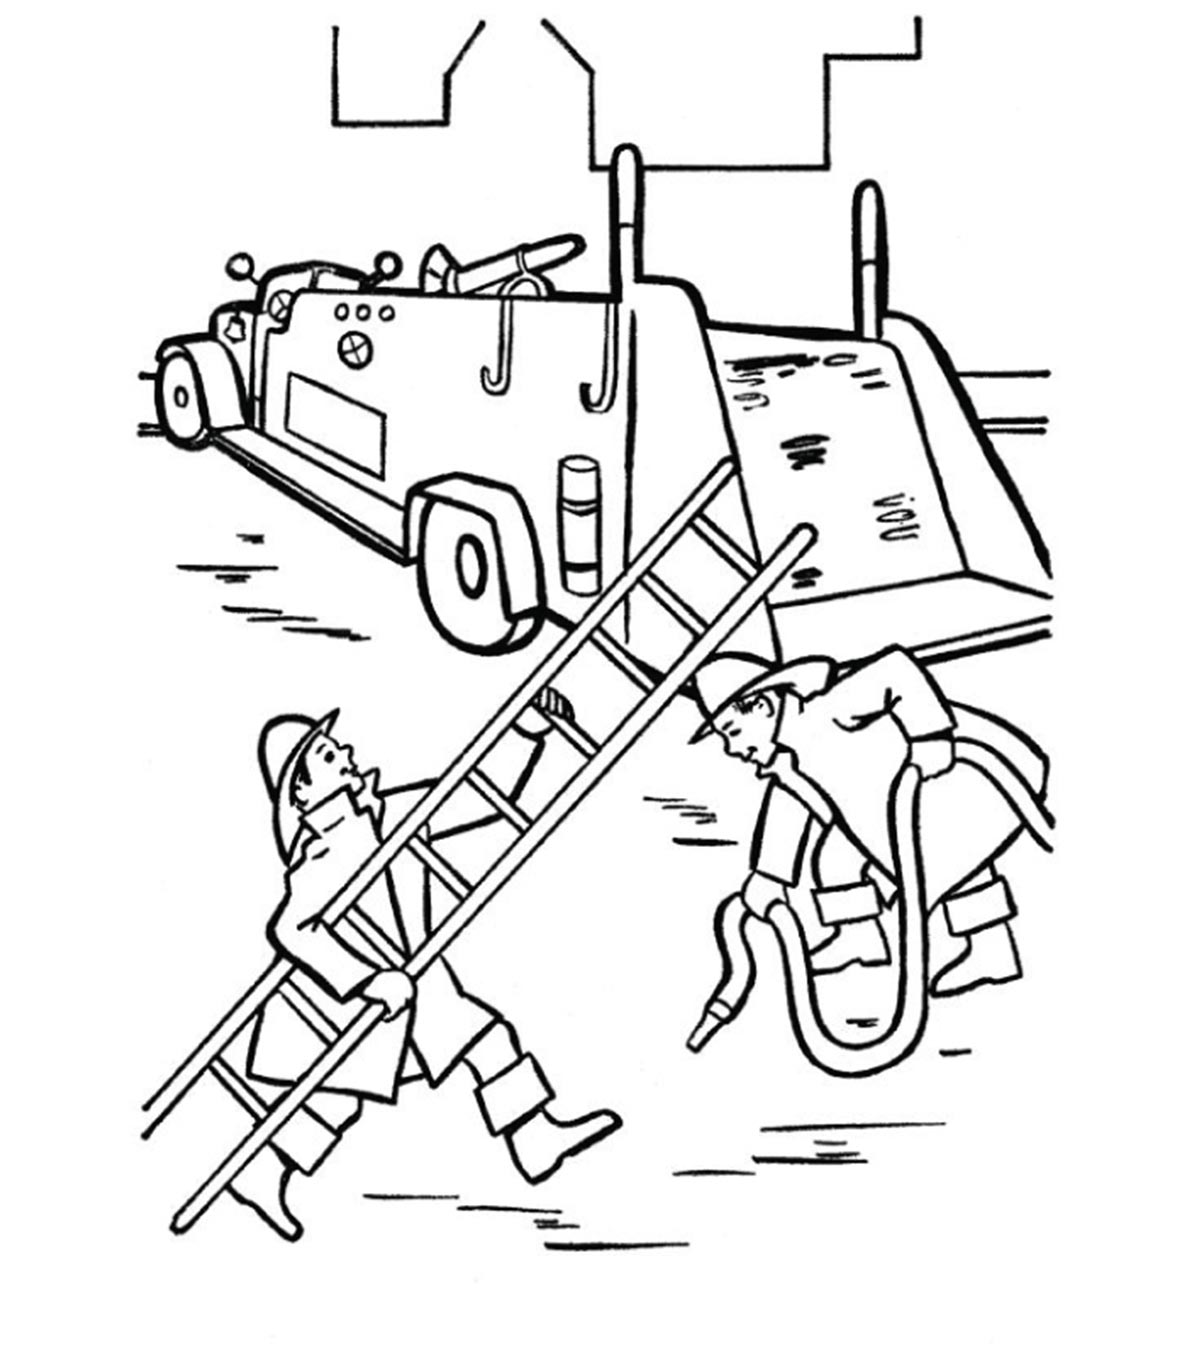 Truck Coloring Sheets | Monster truck coloring pages, Firetruck ... | 1350x1200